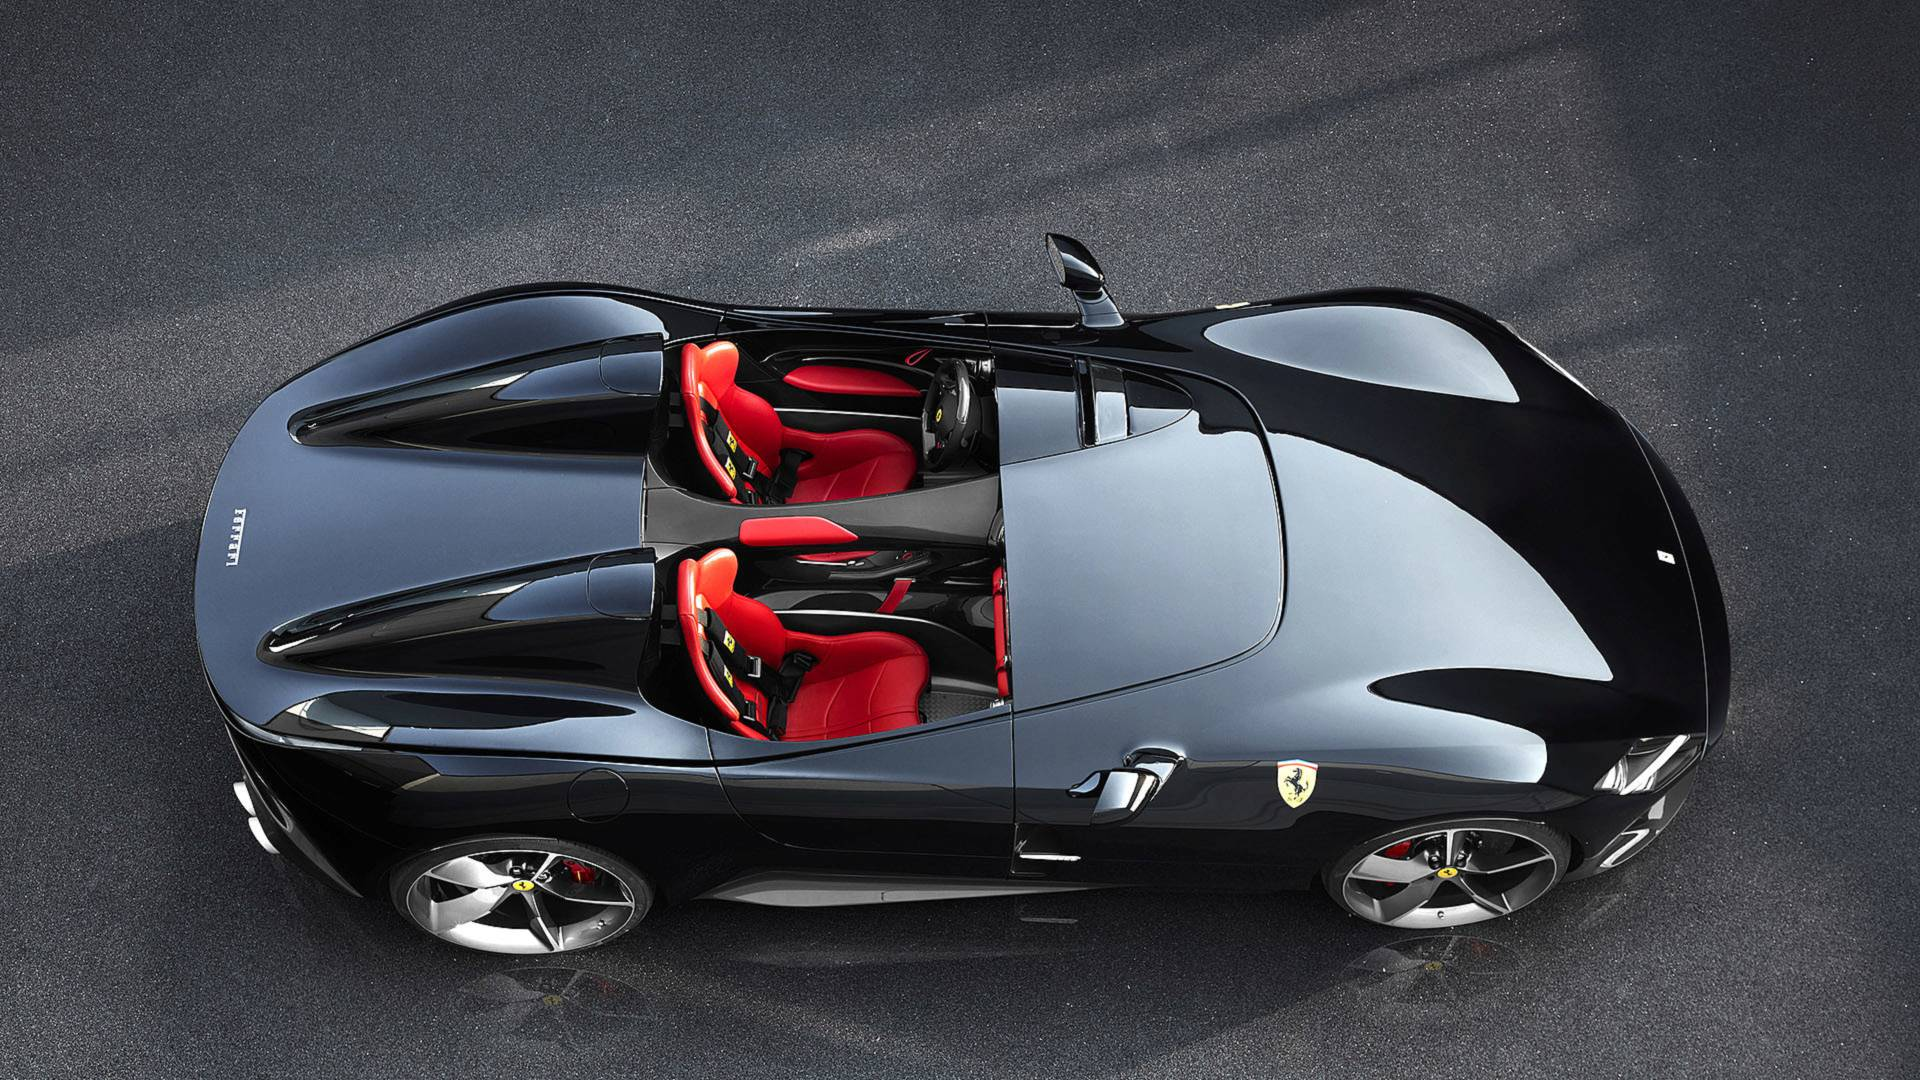 ferrari monza sp1 and sp2 speedsters exotic car list. Black Bedroom Furniture Sets. Home Design Ideas